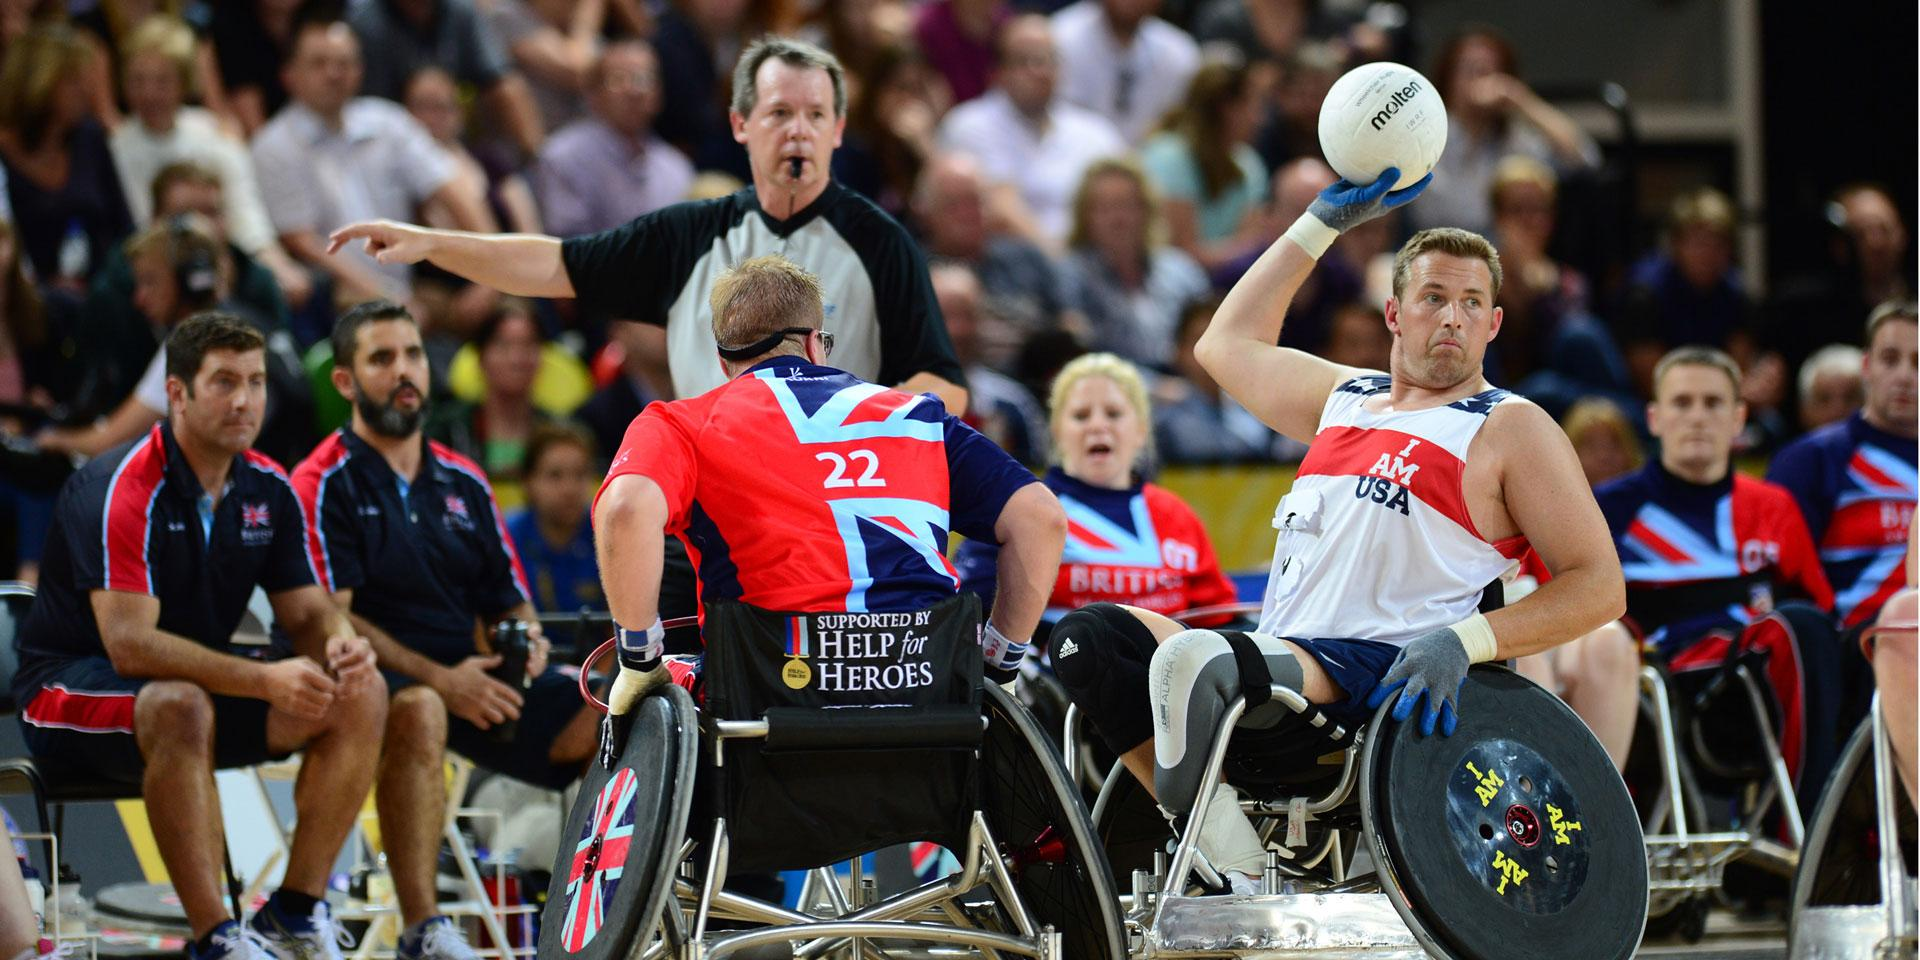 Sporting competition at the inaugural Invictus Games, 2014